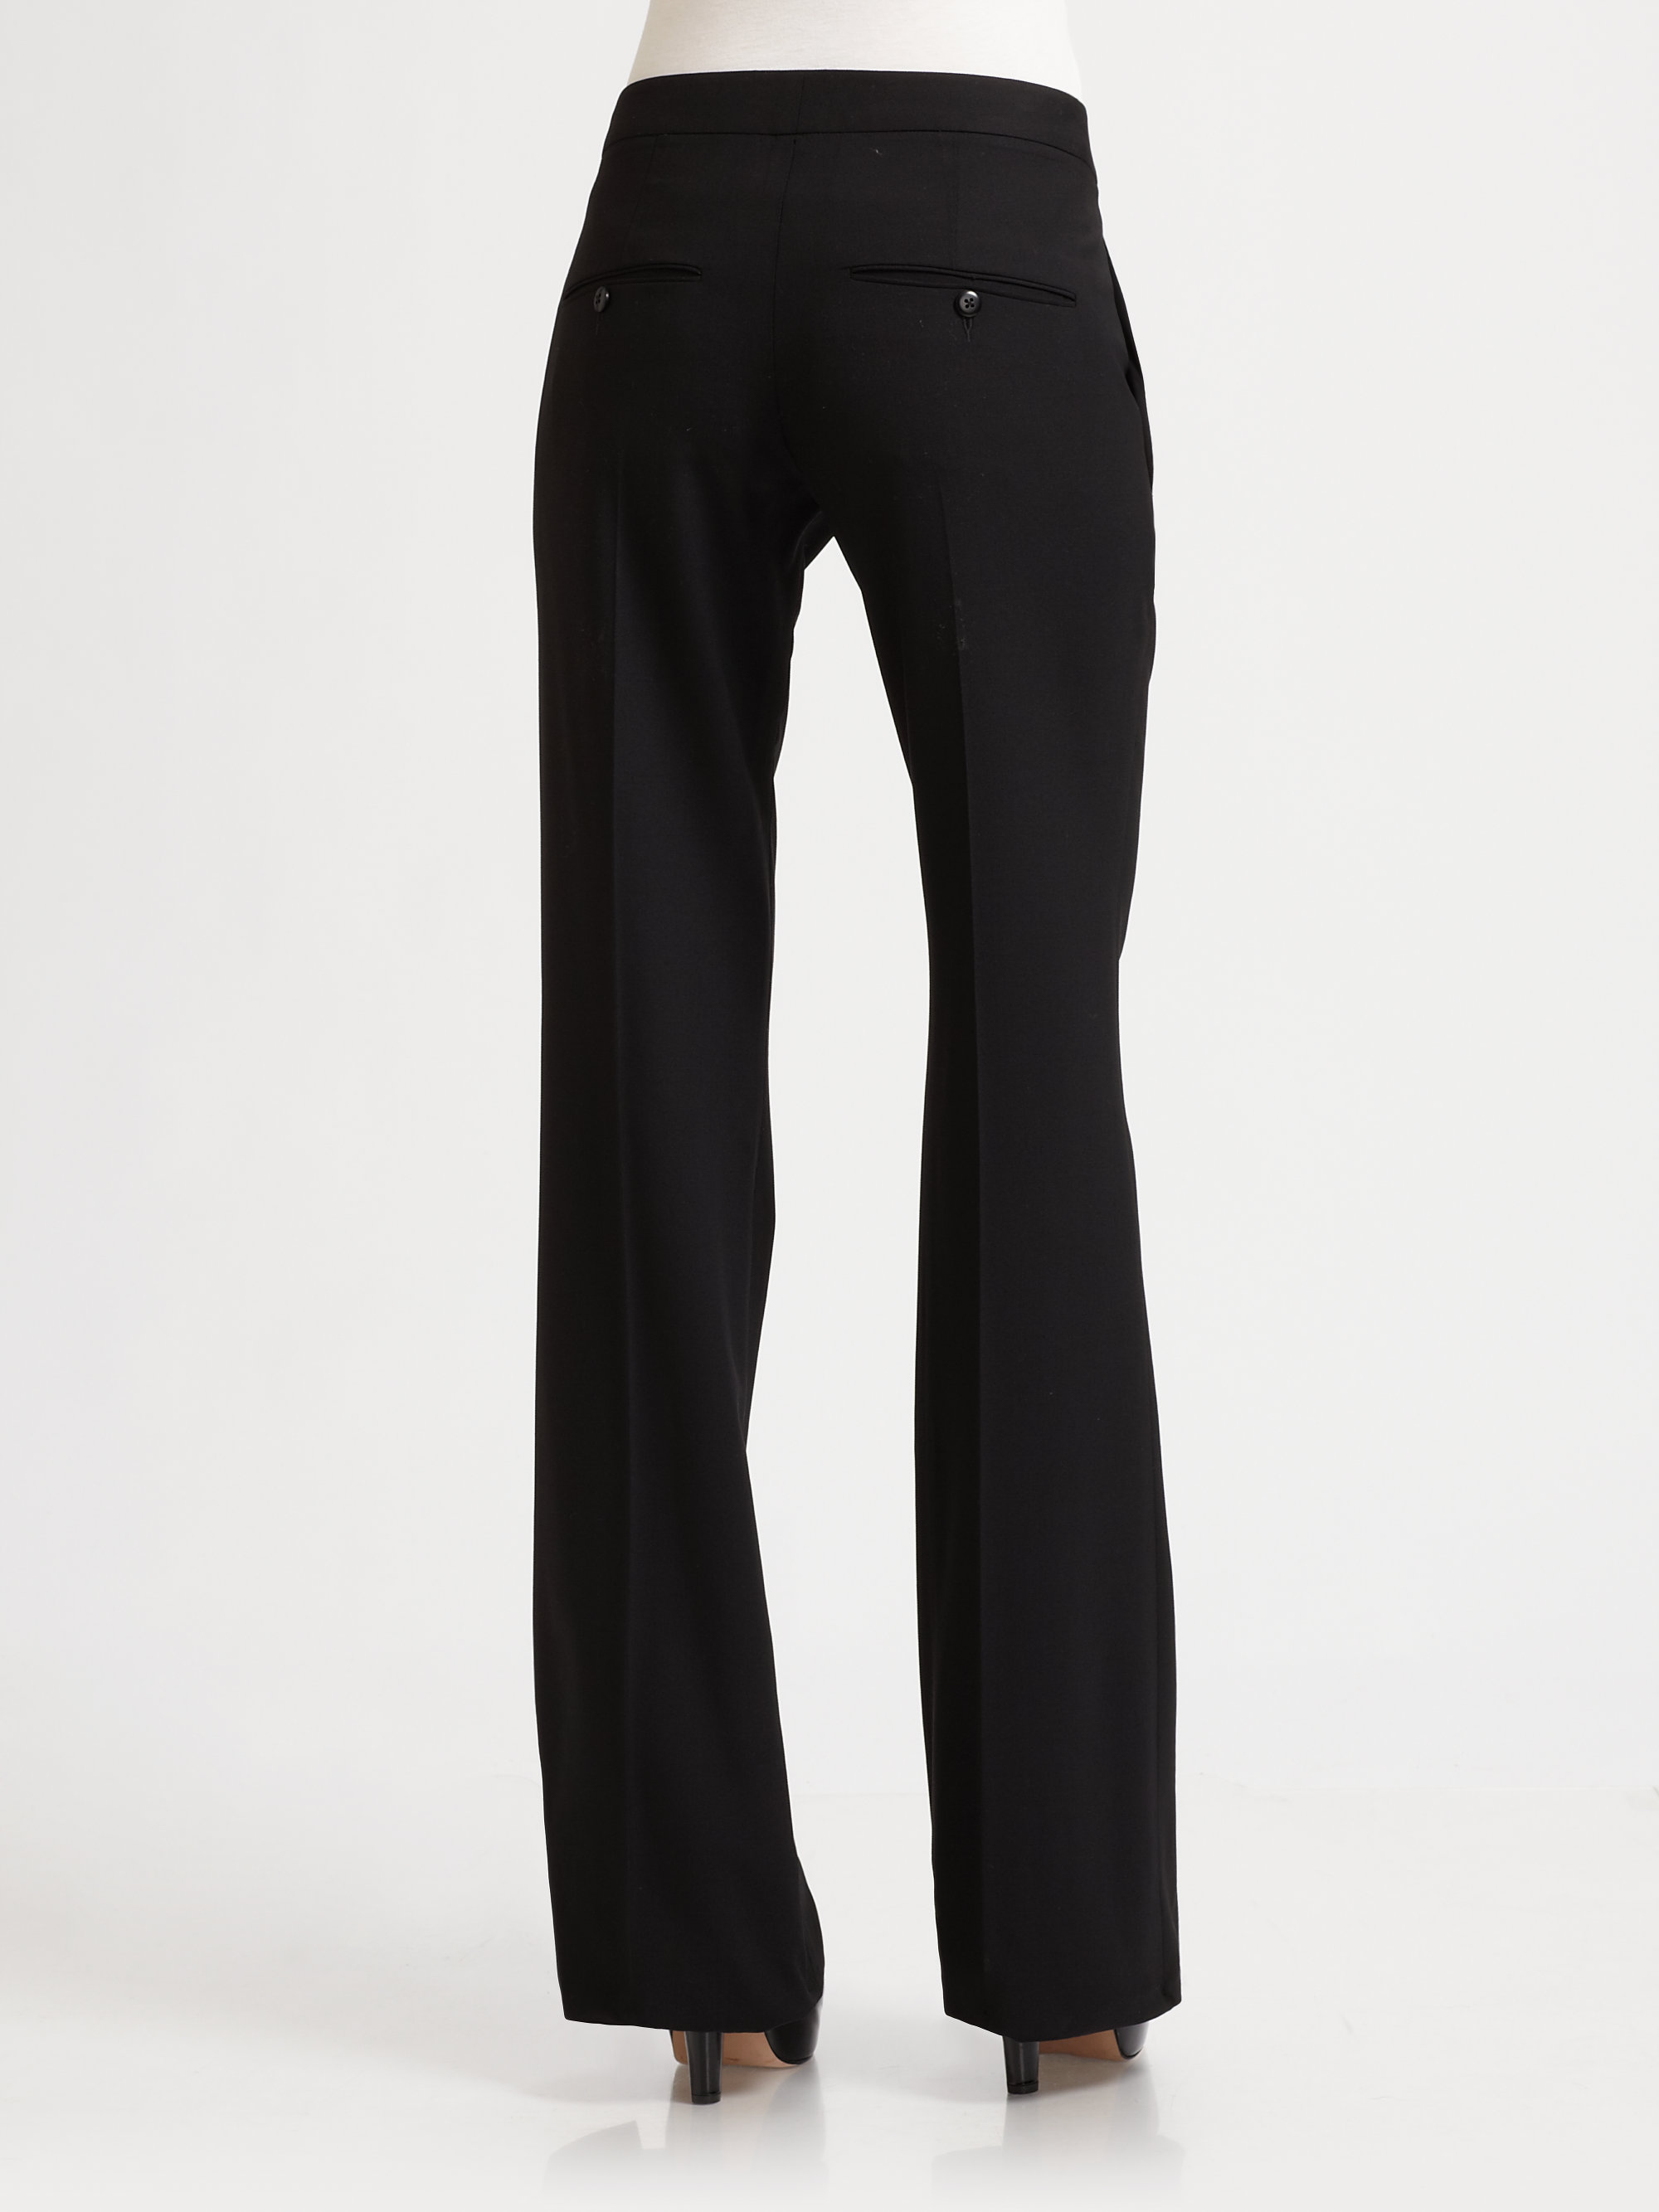 Lyst - Theory Yadie Pleated Flare Dress Pants in Black